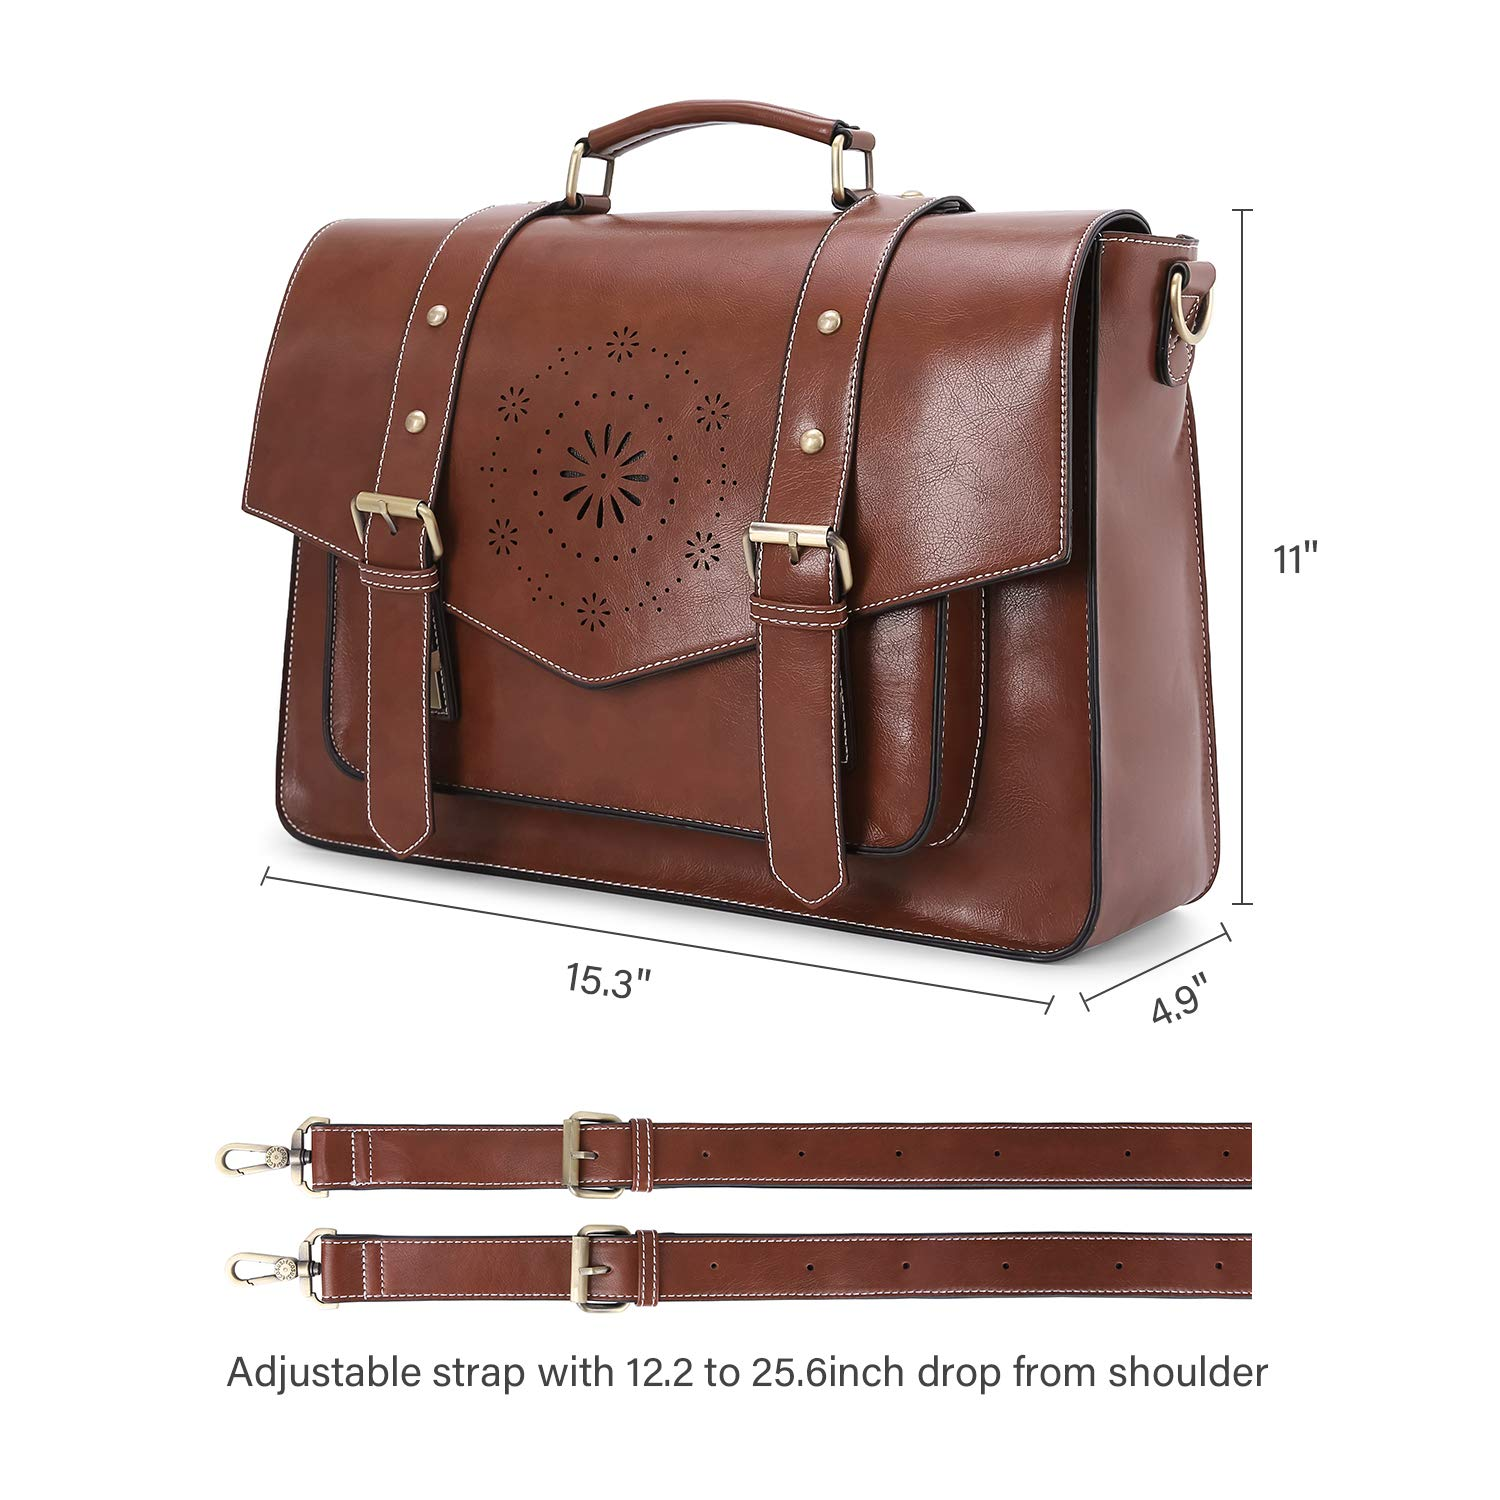 ECOSUSI Backpack for Women Briefcase Messenger Laptop Bag Vegan Leather Satchel Work Bags Fits 15.6 inch Laptops, Coffee by ECOSUSI (Image #8)